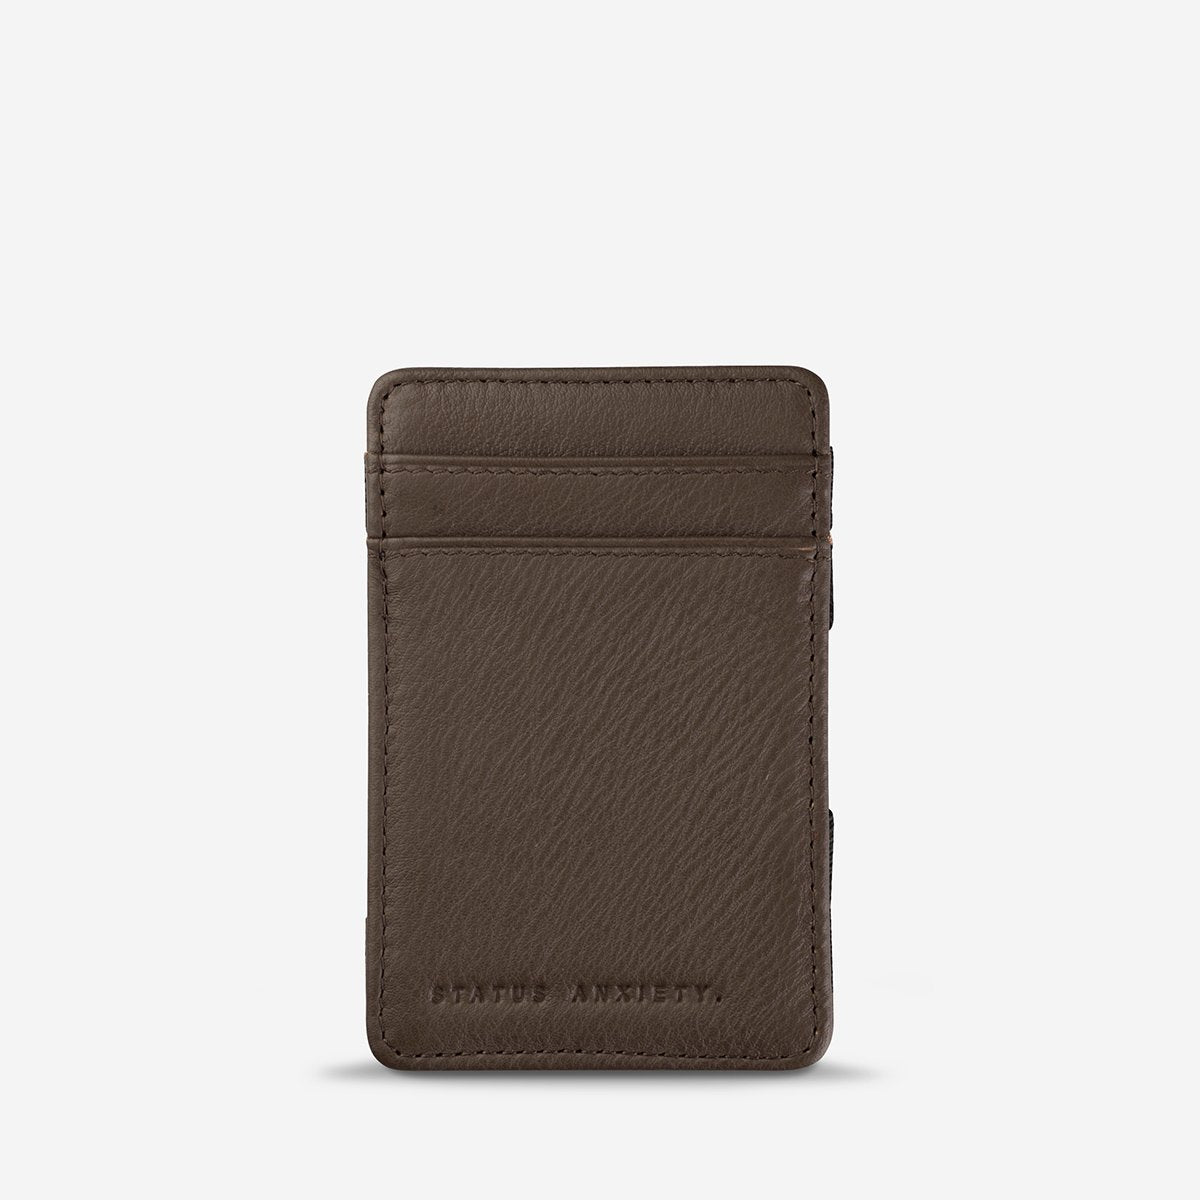 Status Anxiety Flip Wallet - The Artisan Storeroom